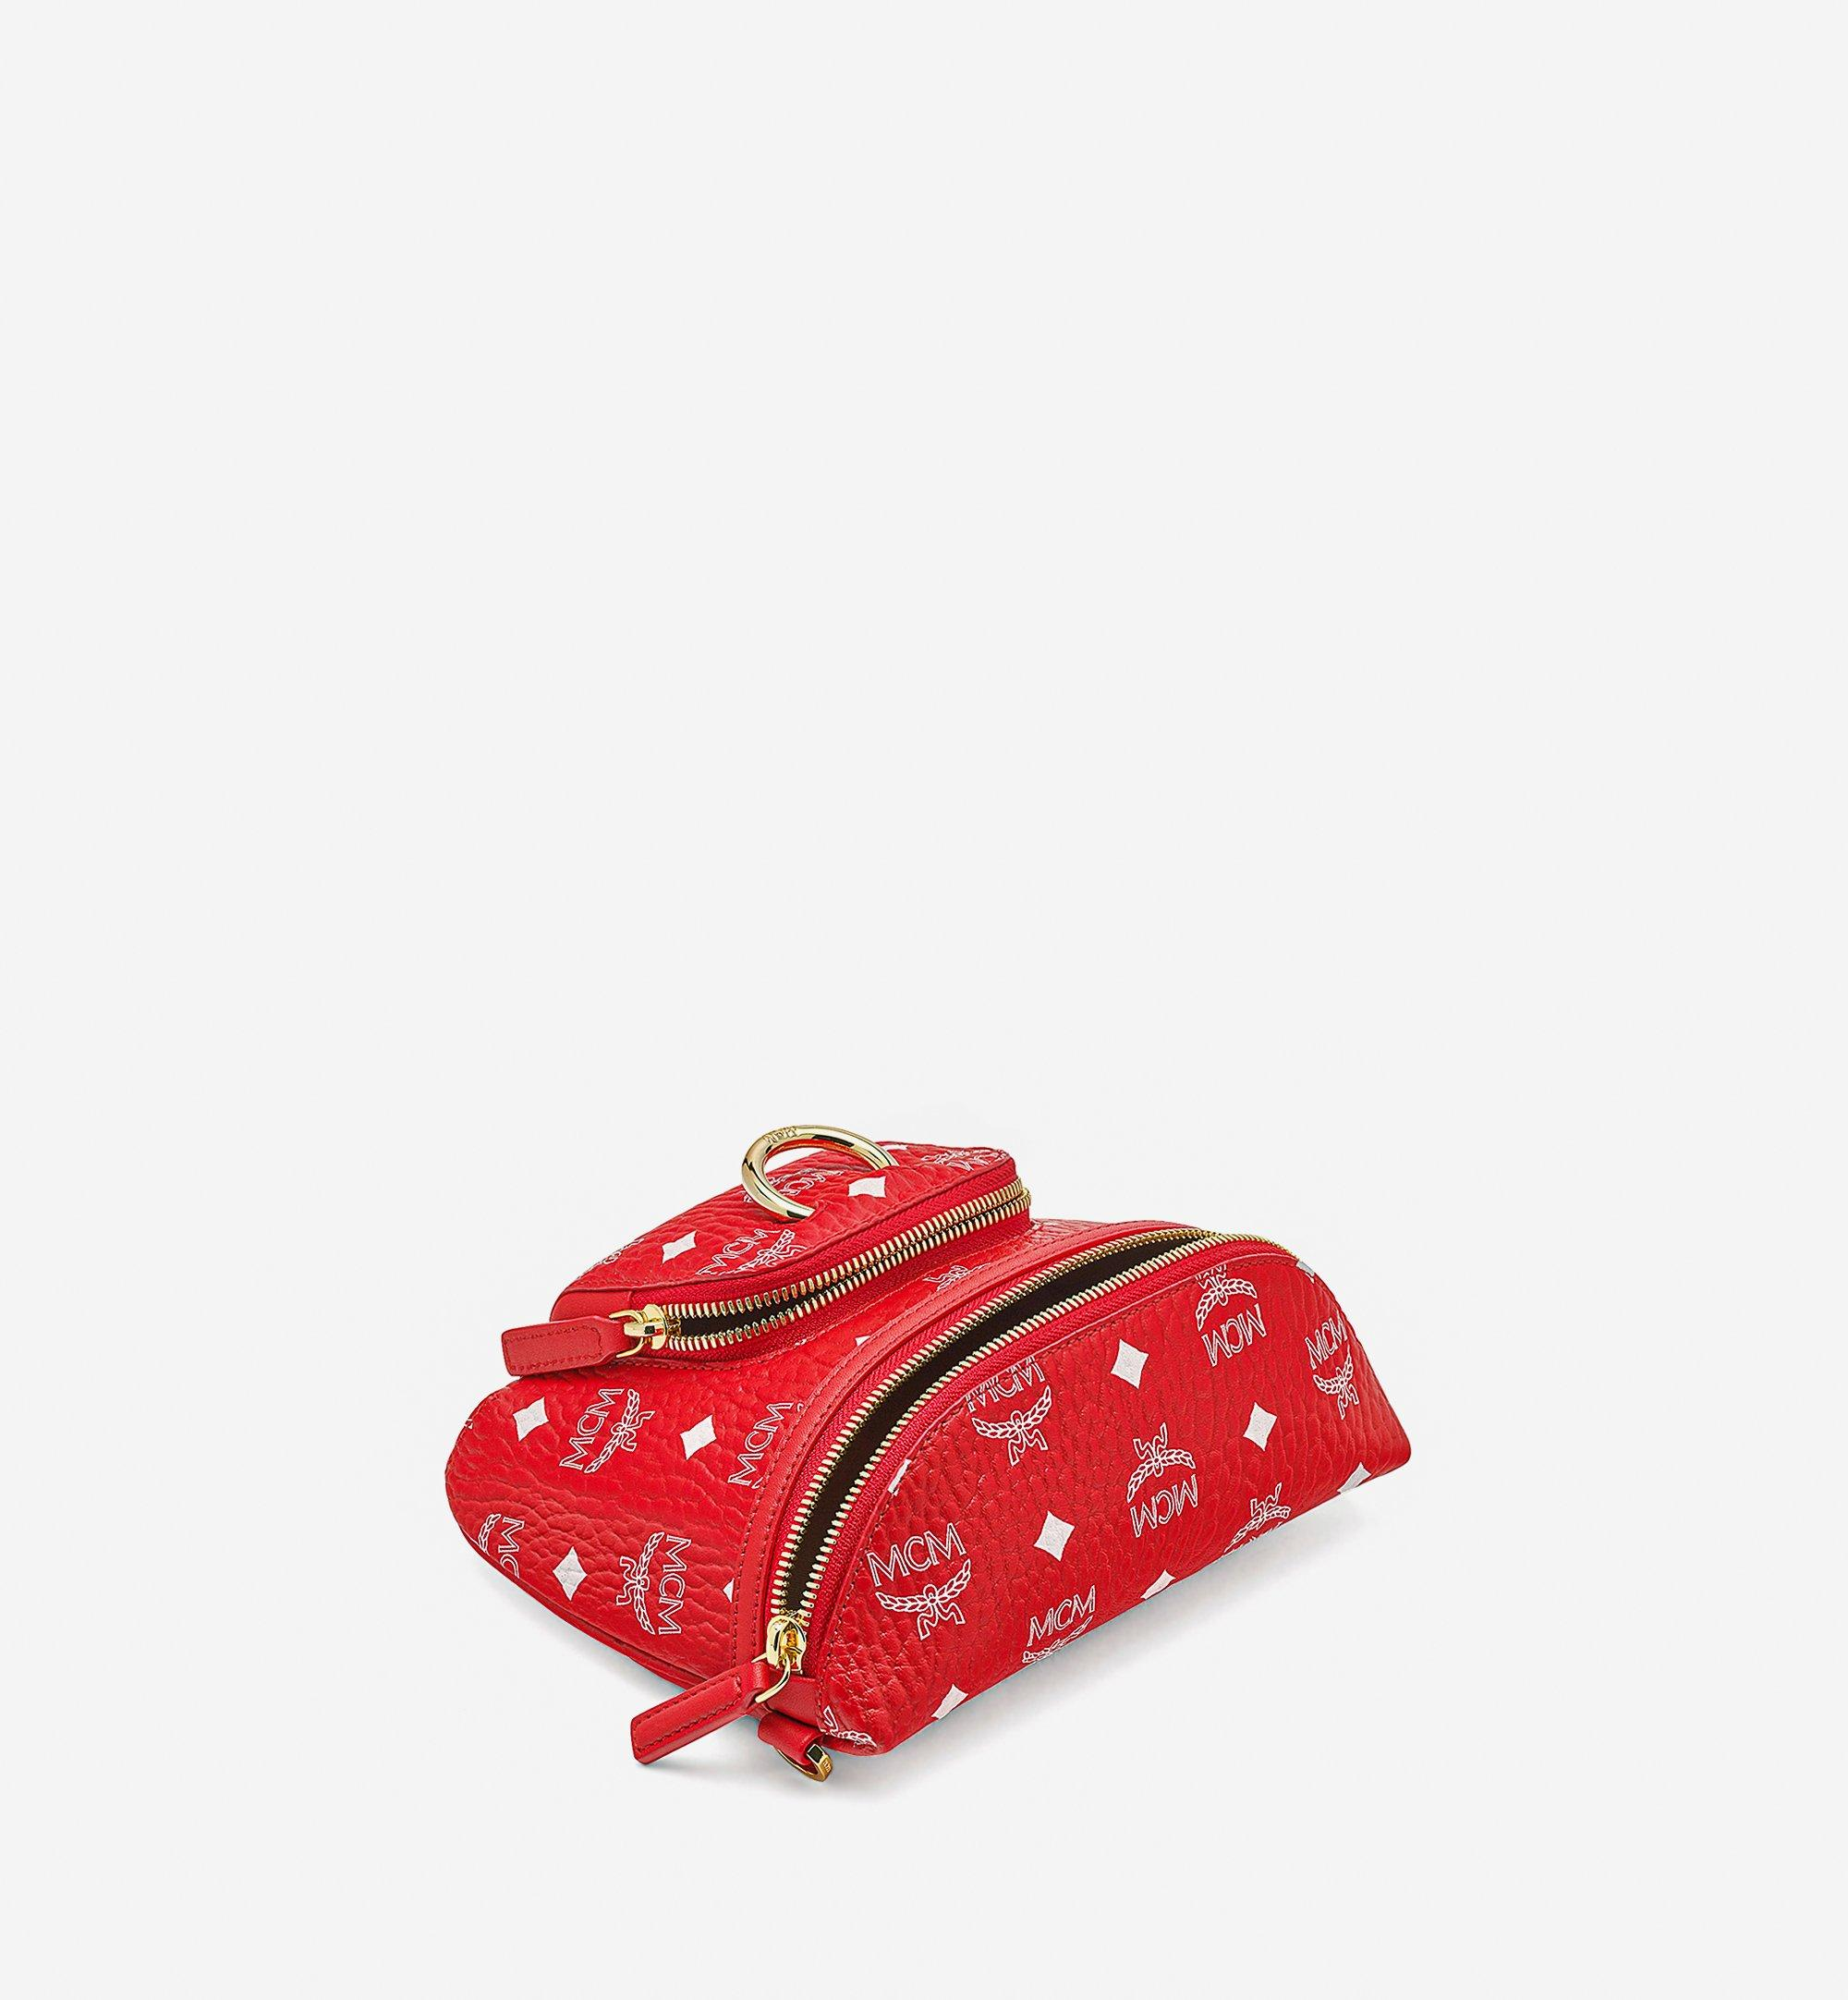 MCM Klassik Crossbody in New Year Visetos Red MMRBSKC01AV001 Alternate View 2